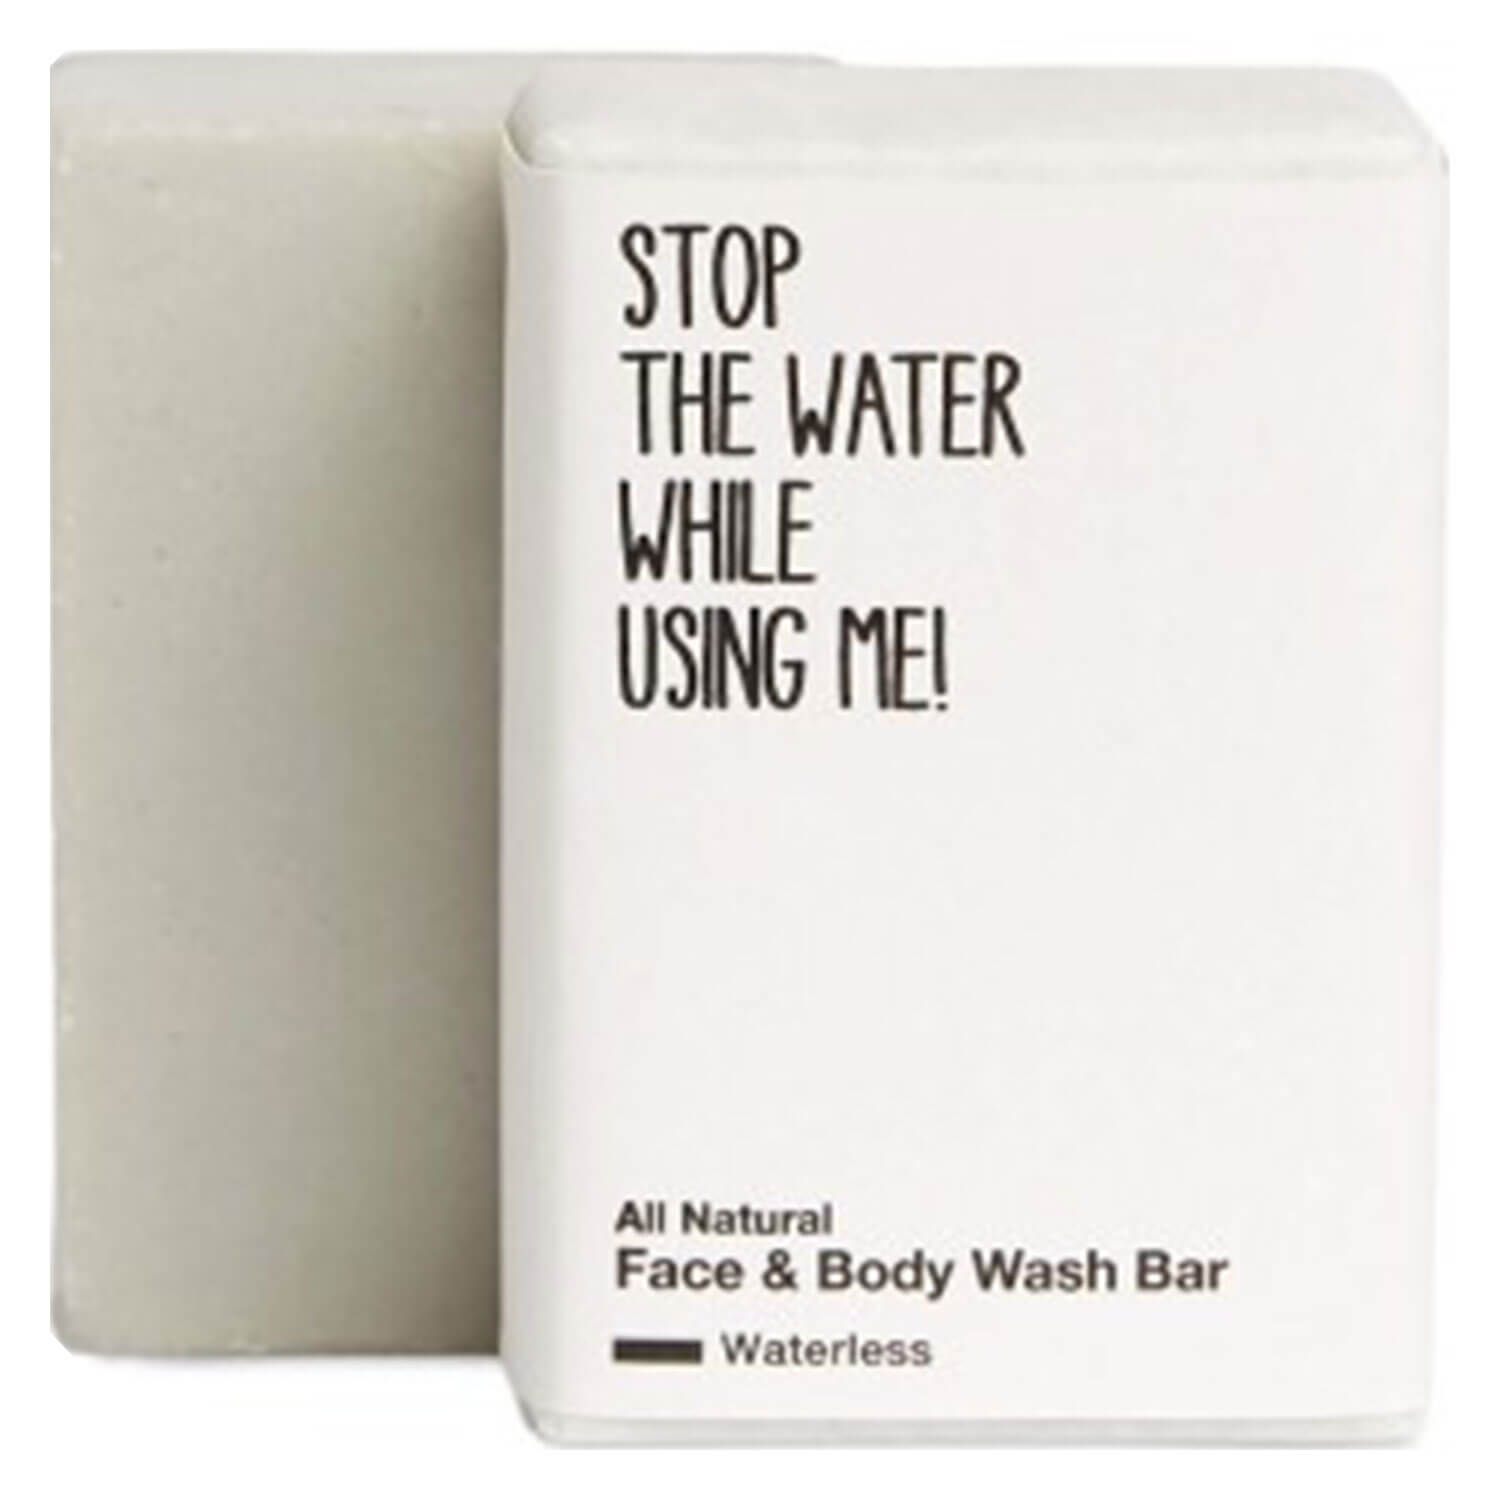 All Natural Body - Waterless Face & Body Wash Bar - 110g